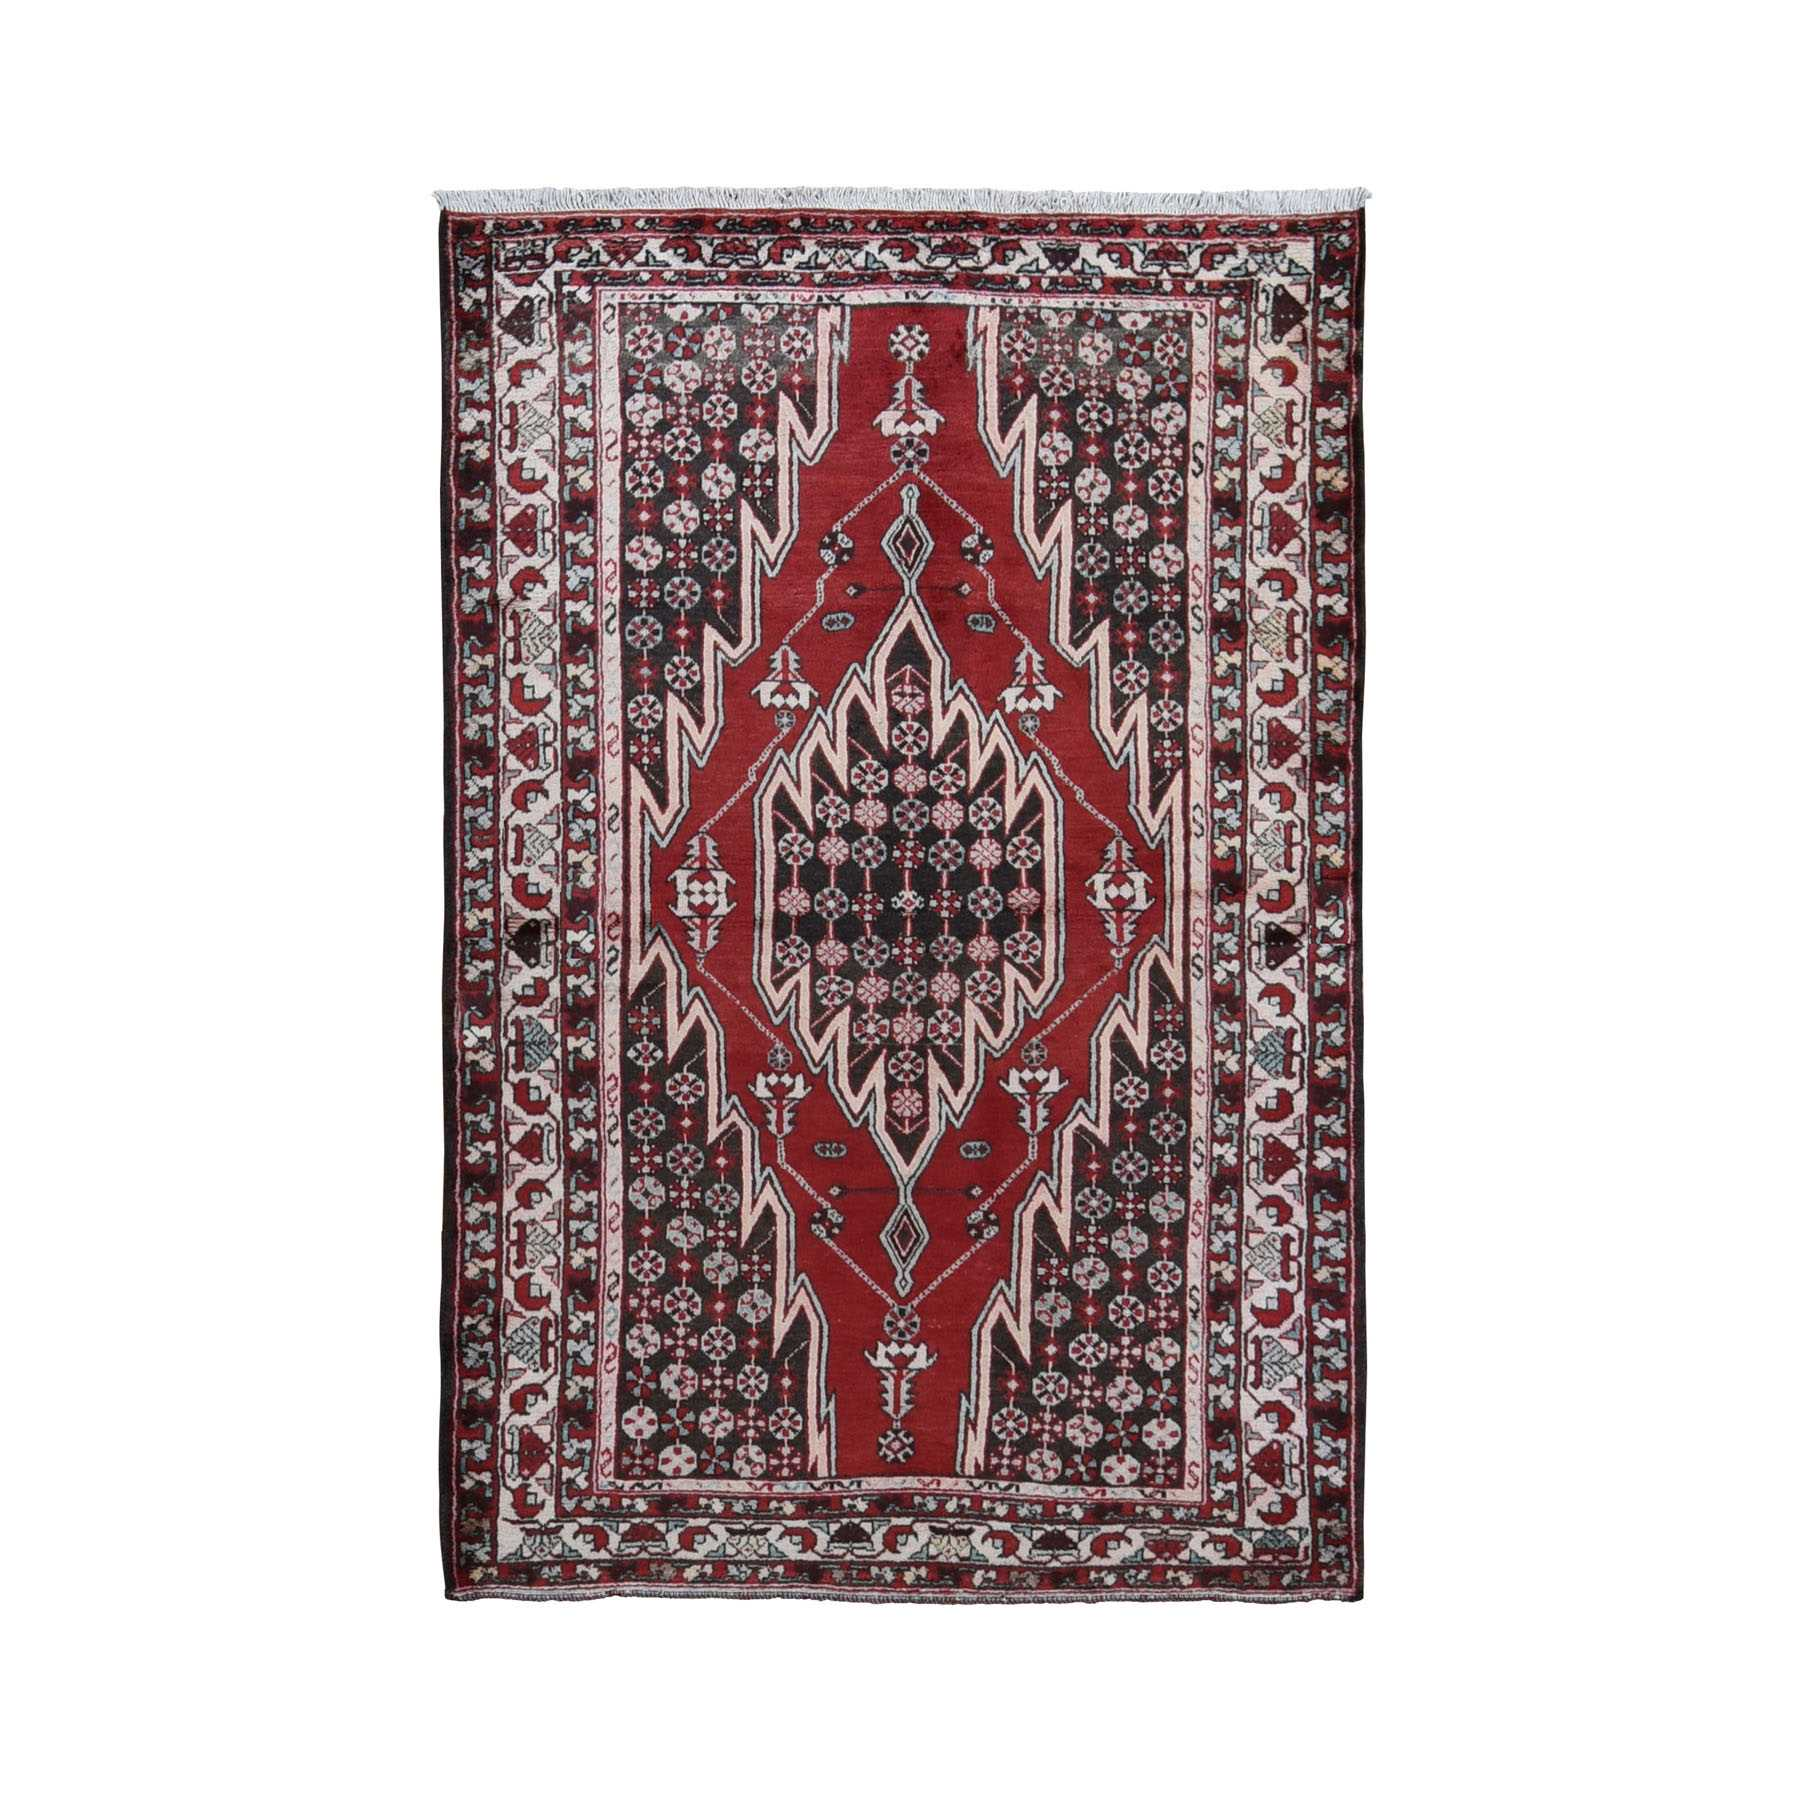 "4'5""x6'8"" Red Vintage Persian Mazlagan Pure Wool Hand Woven Bohemian Rug"